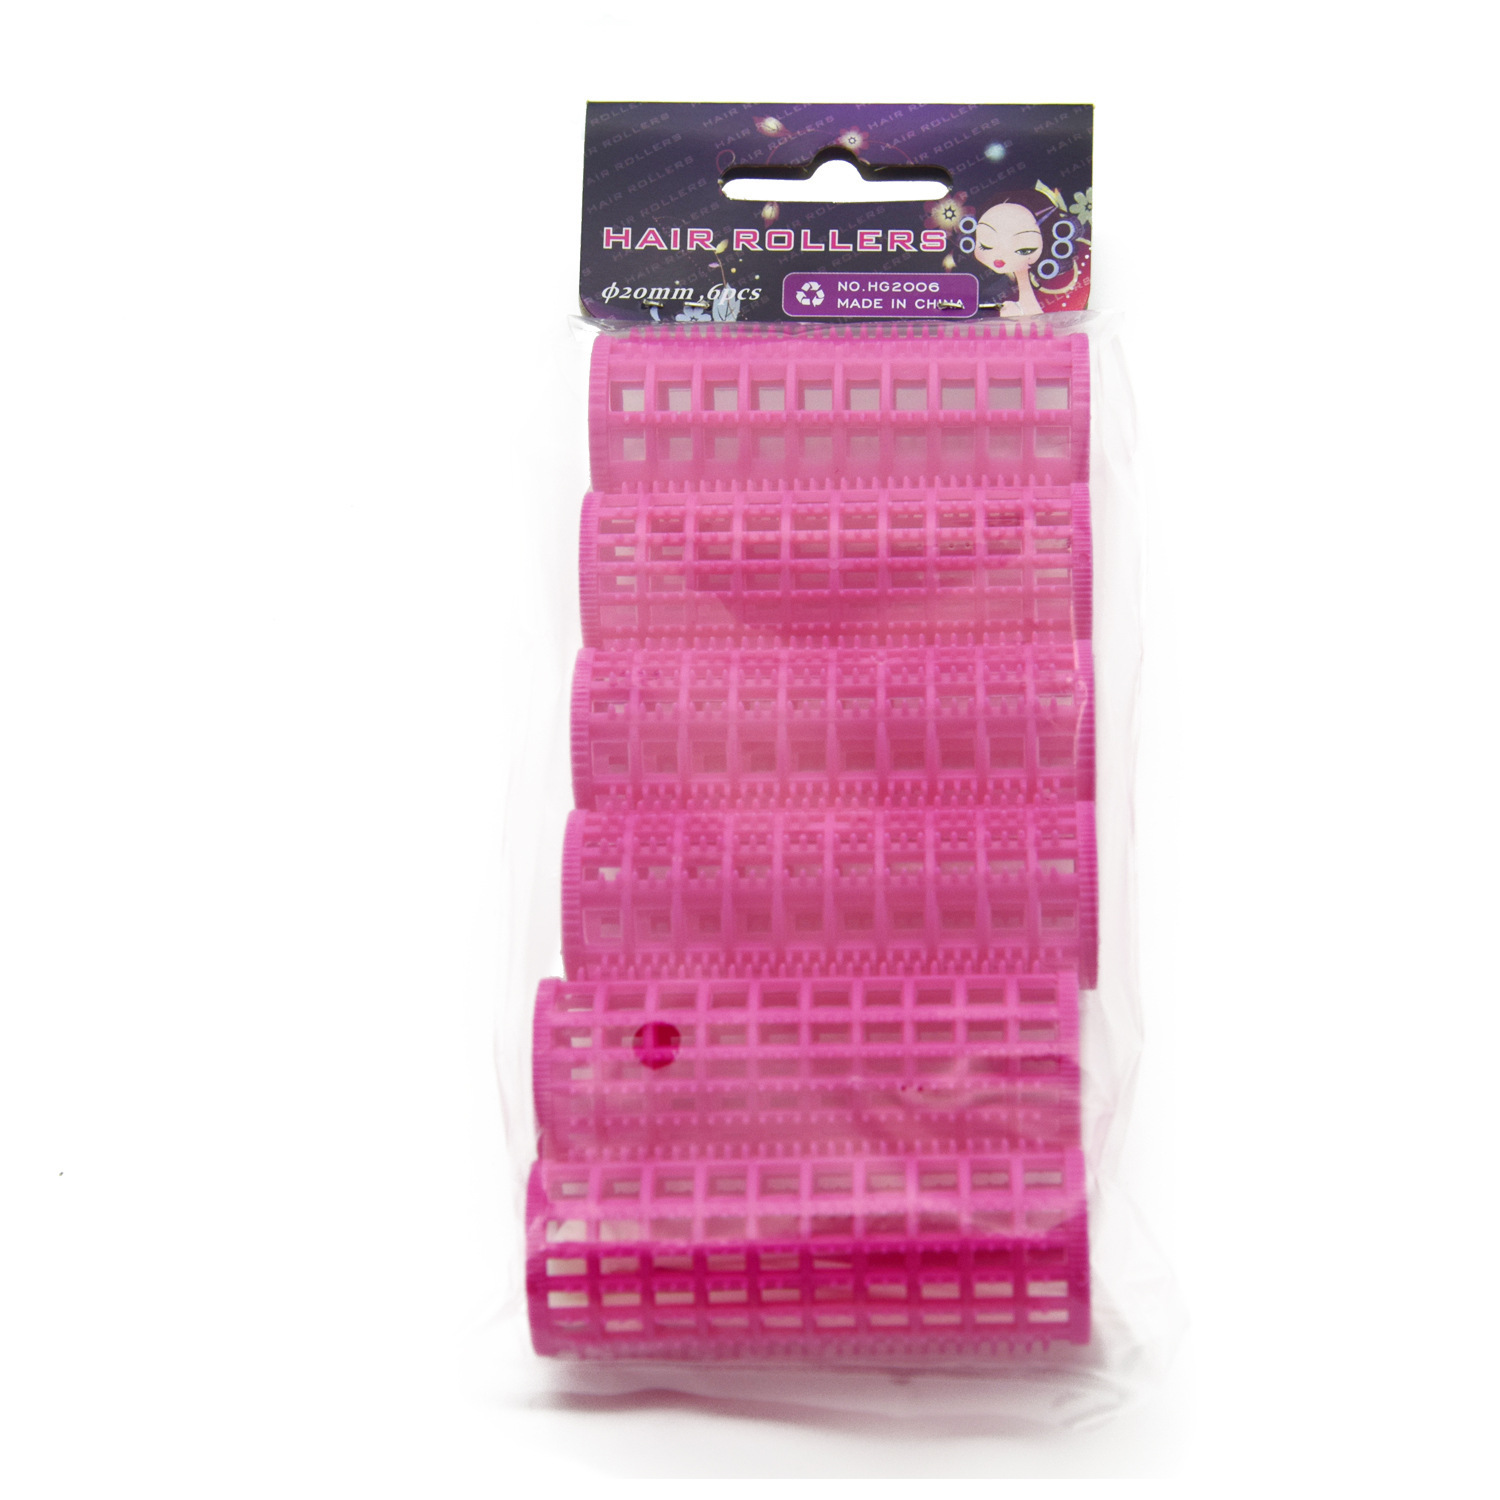 20mm Plastic Tooth Hair Roller with Fixed Pins Fluffy layers Hair Air Bang Curl Rods Curlers Hairdresser Styling U1196